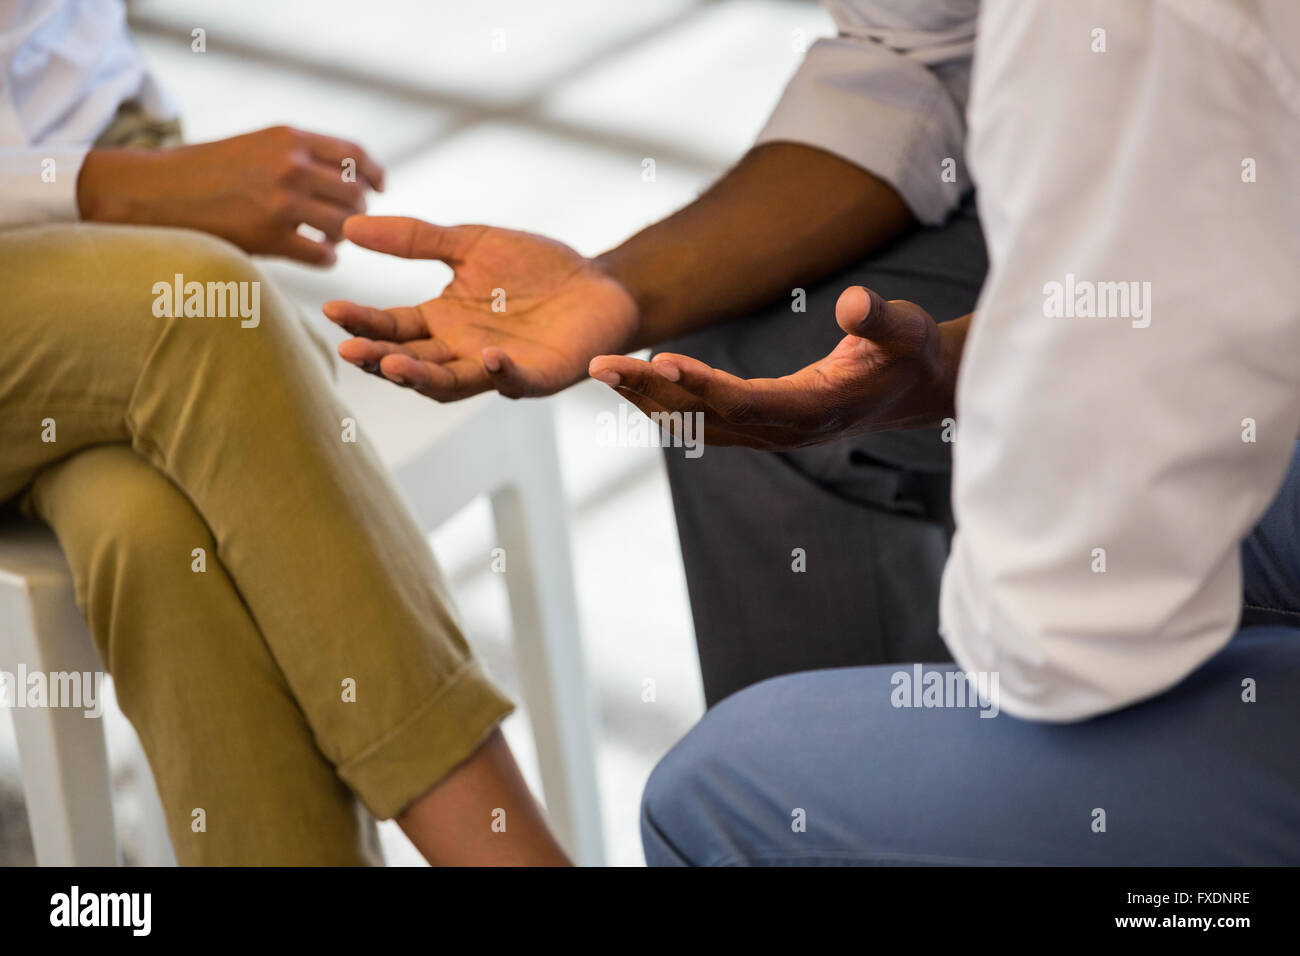 Mid section of businesspeople making hand gesture - Stock Image